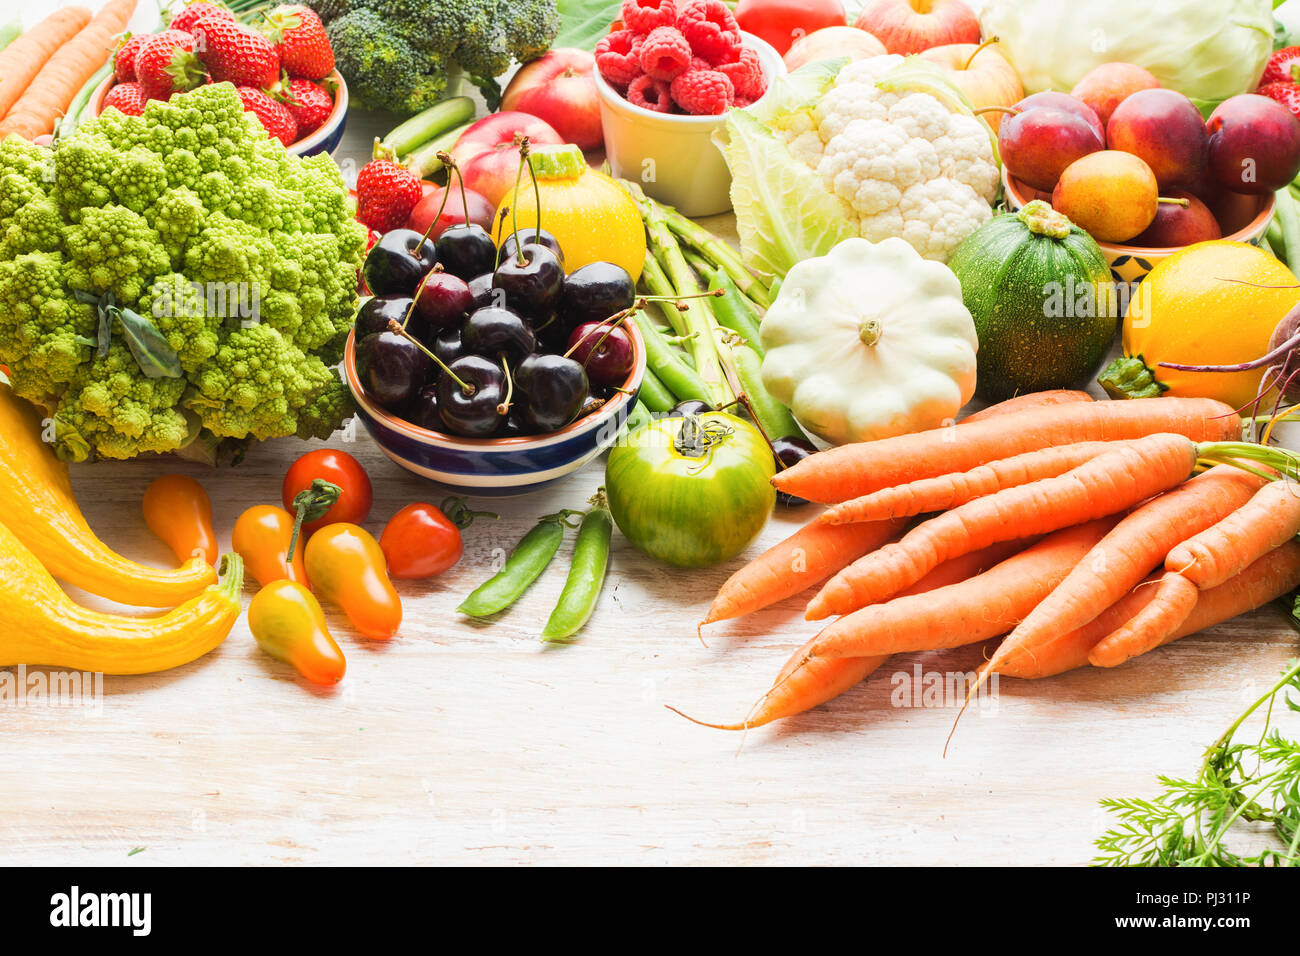 Lots of summer fruits vegetables berries, apples cherries peaches strawberries cabbage broccoli cauliflower squash tomatoes carrots spring onions beans beetroot, copy space, selective focus - Stock Image